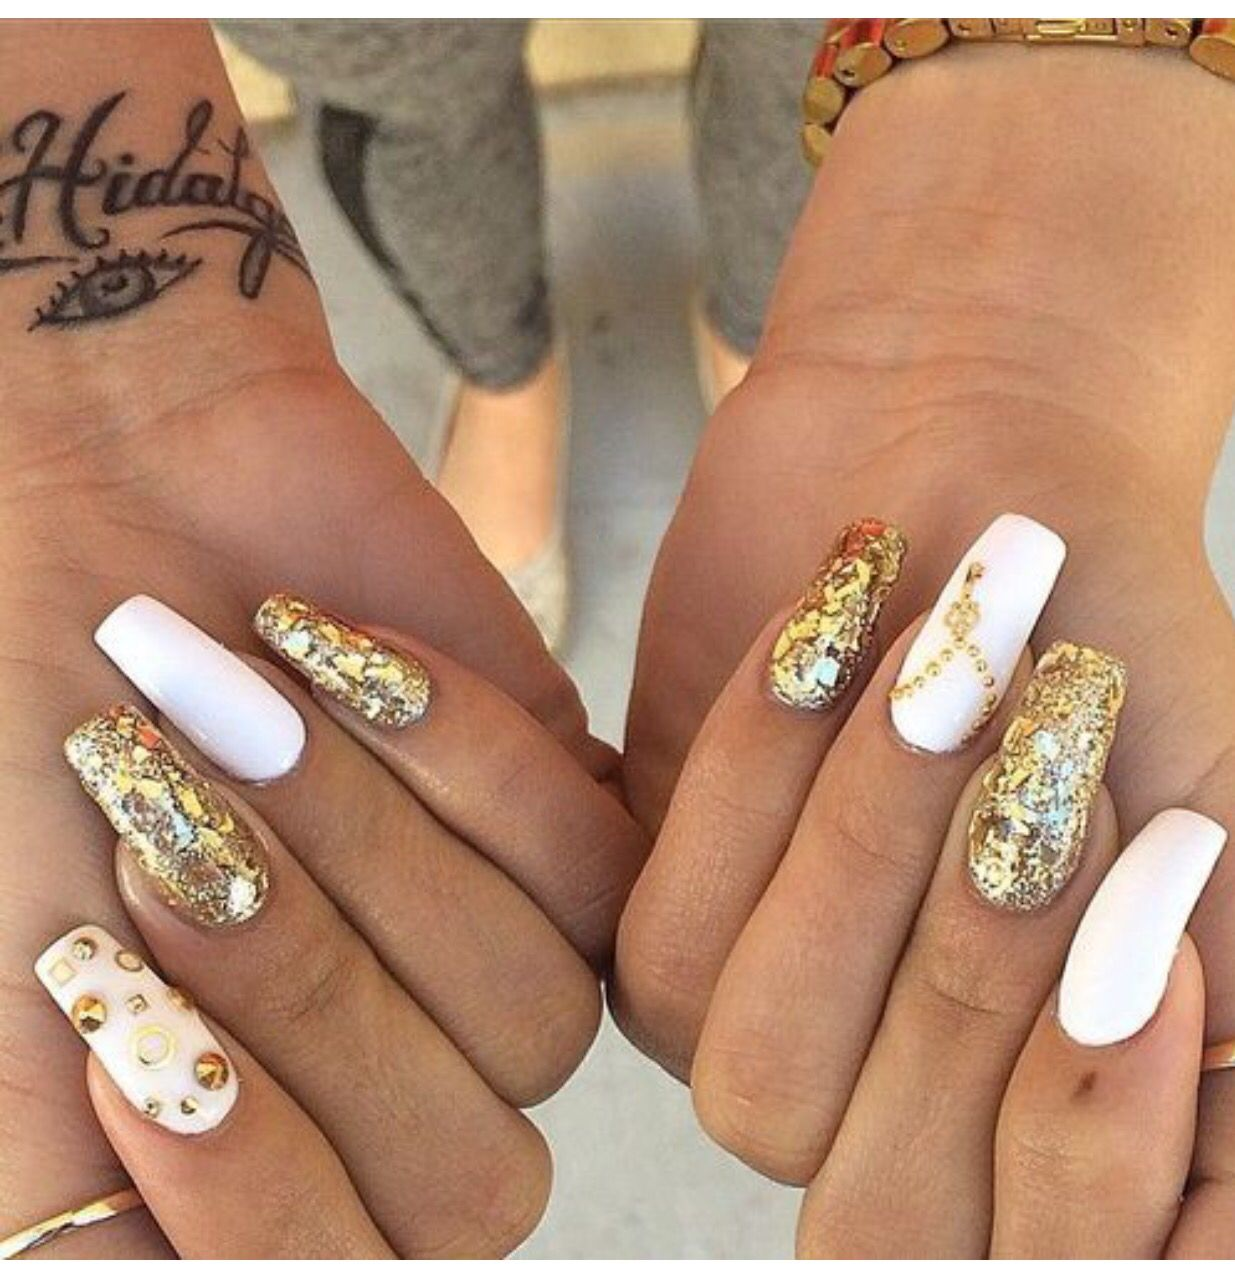 Pin by Beautiful Human Hair™ on Nails | Pinterest | Nail nail, Nails ...